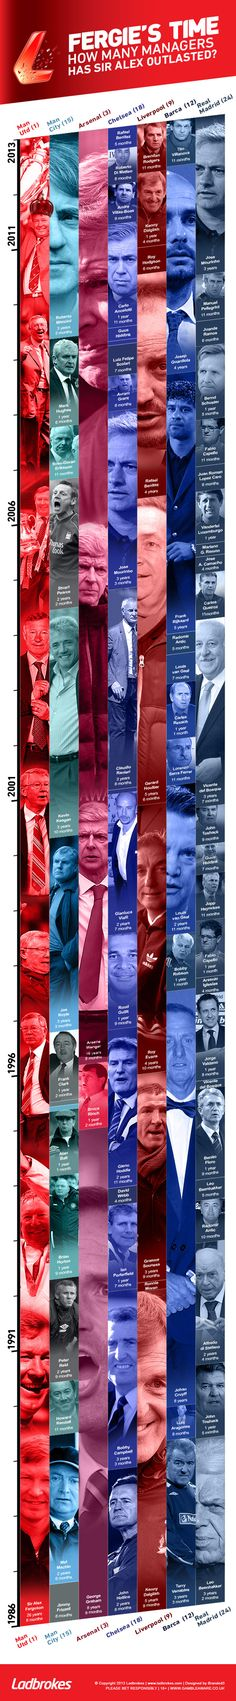 Fergie's time: How many managers has he outlasted? [Infographic] #Ladbrokes